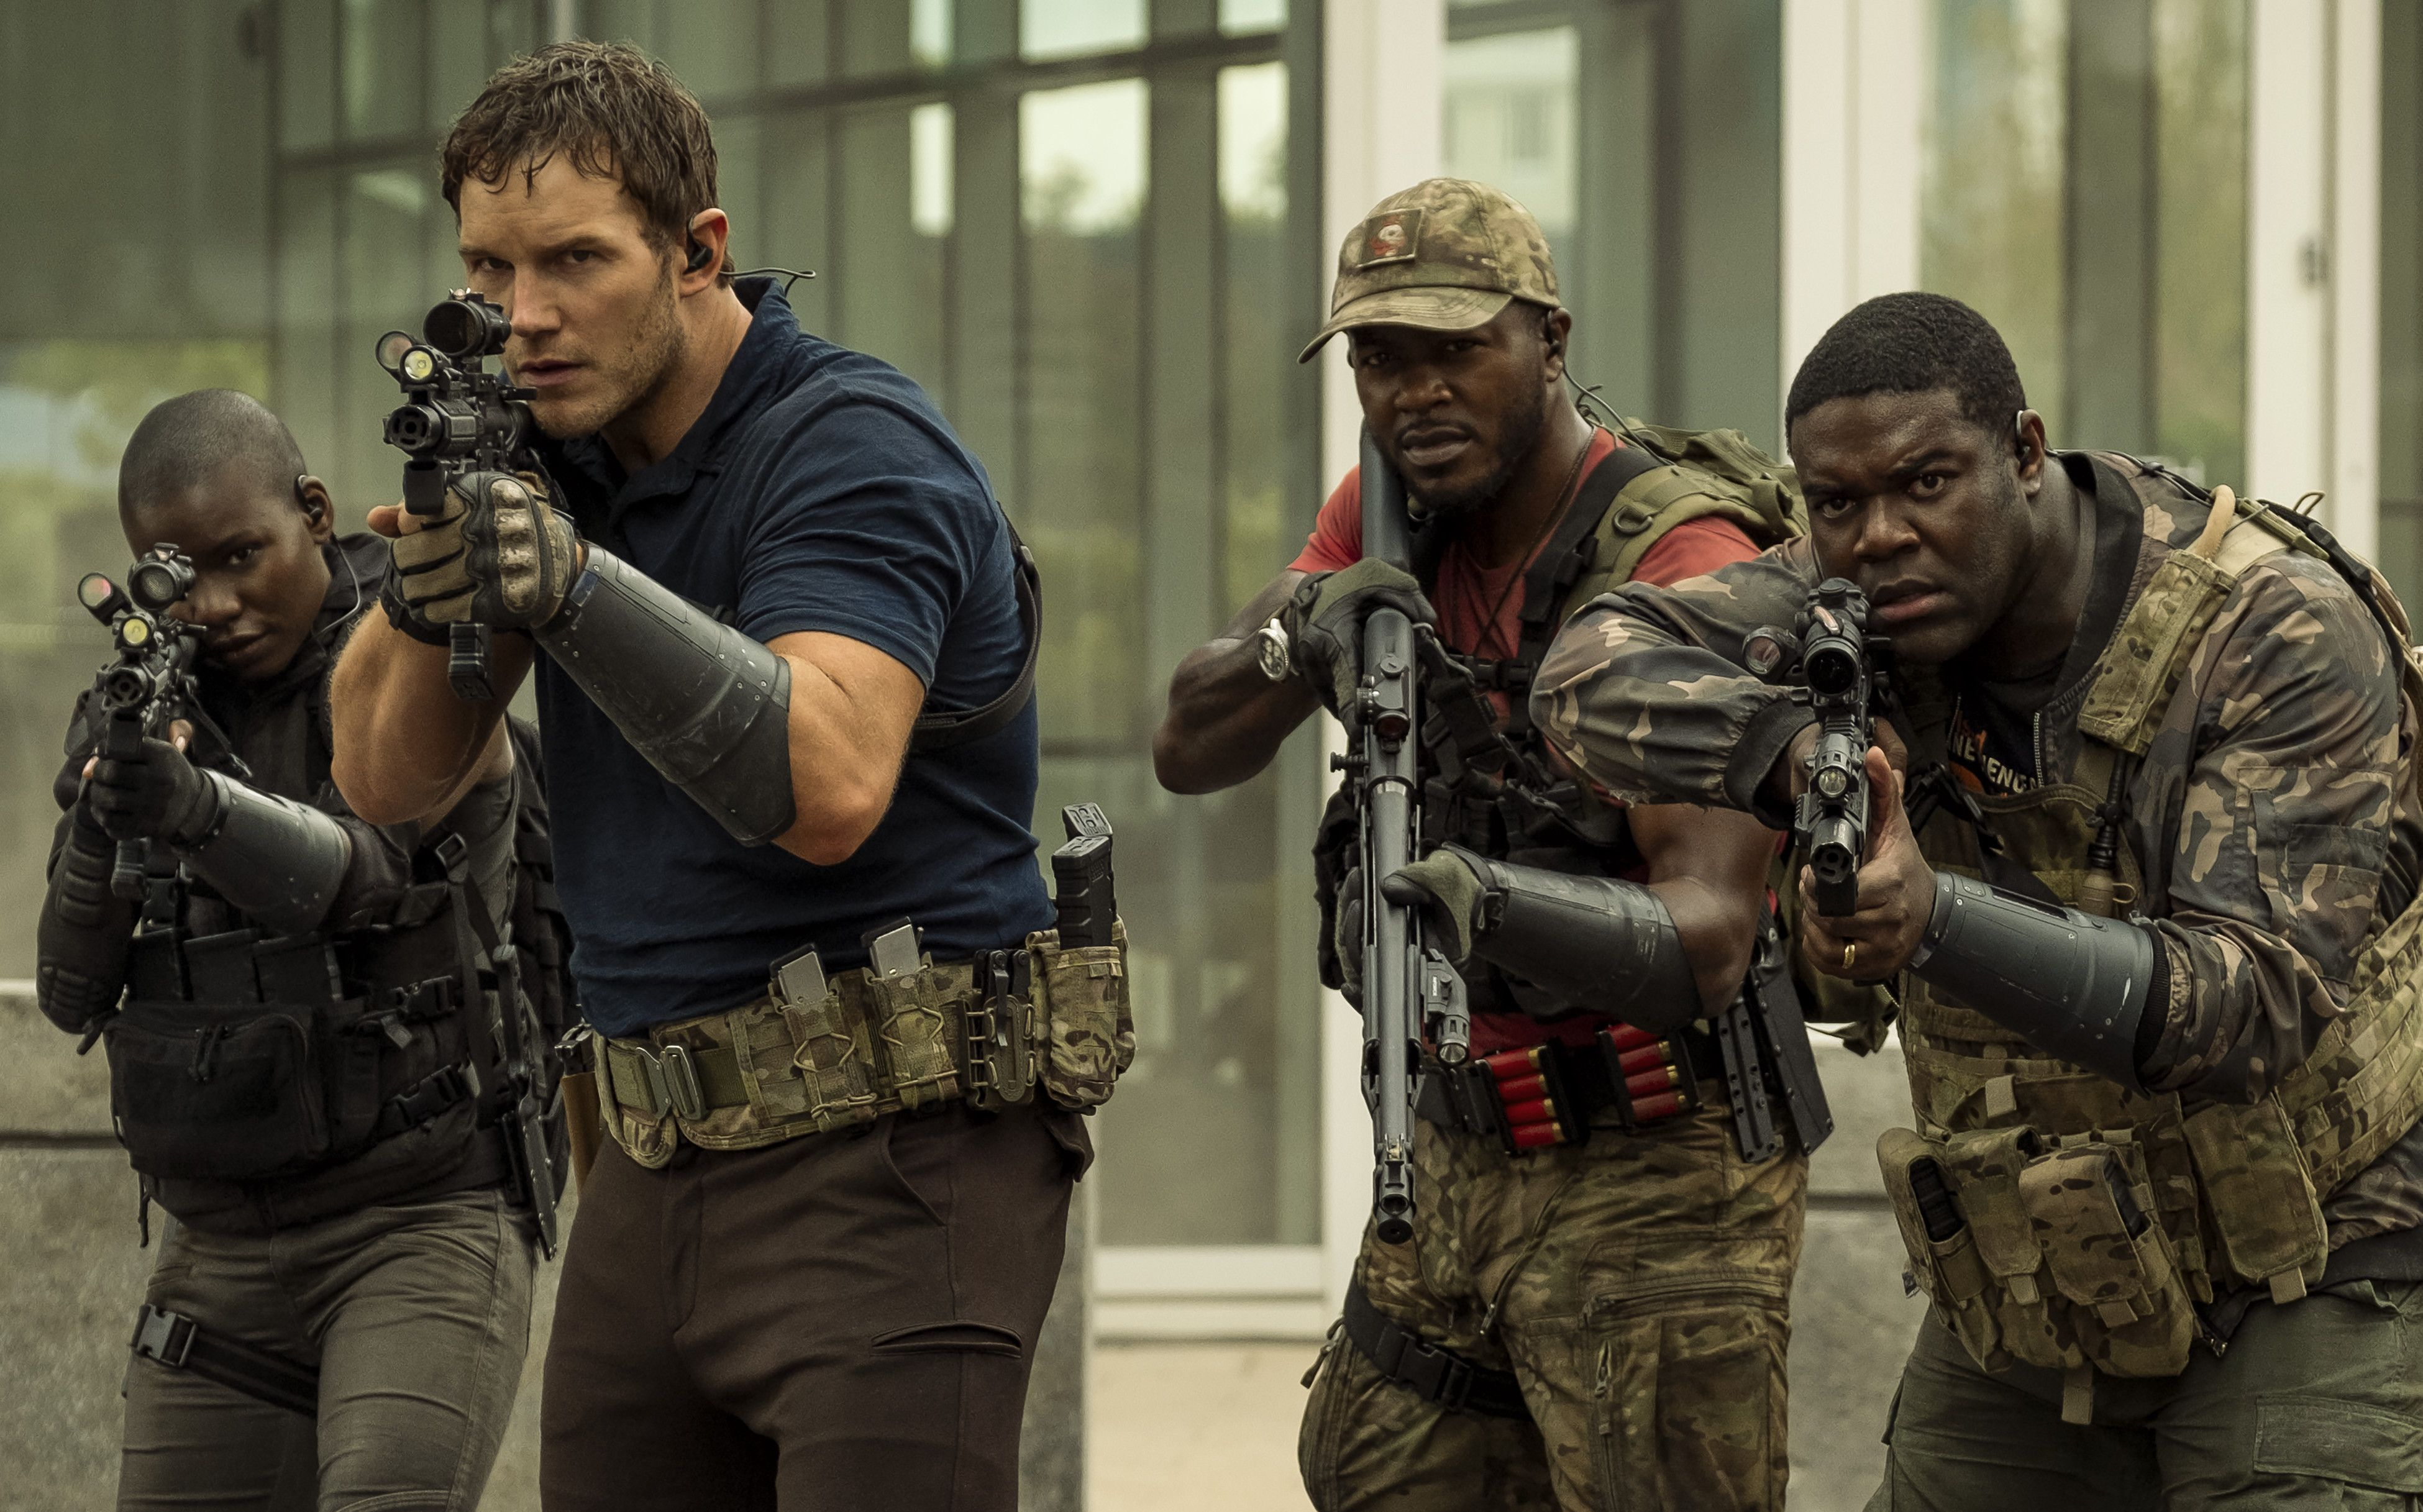 Chris Pratt and soldiers in The Tomorrow War